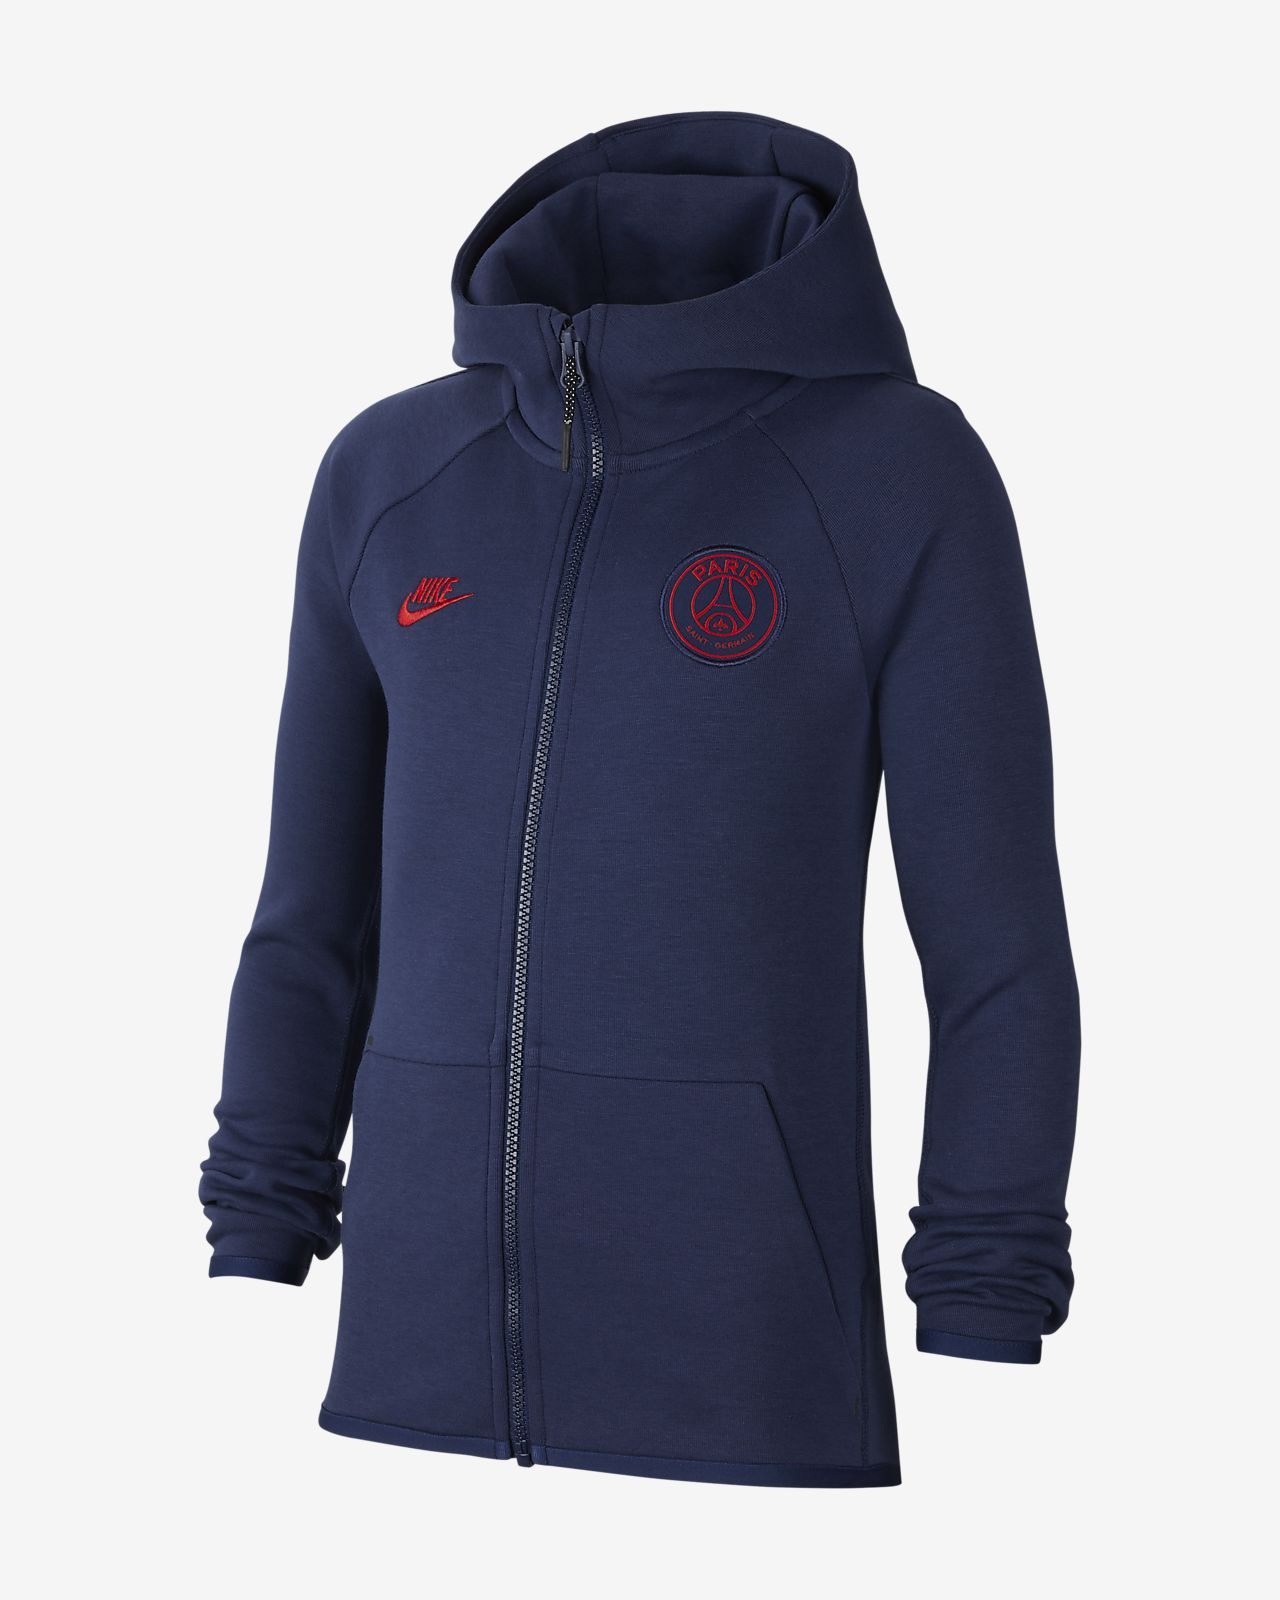 Sweat à capuche à zip intégral Paris Saint Germain Tech Fleece Essentials pour Enfant plus âgé